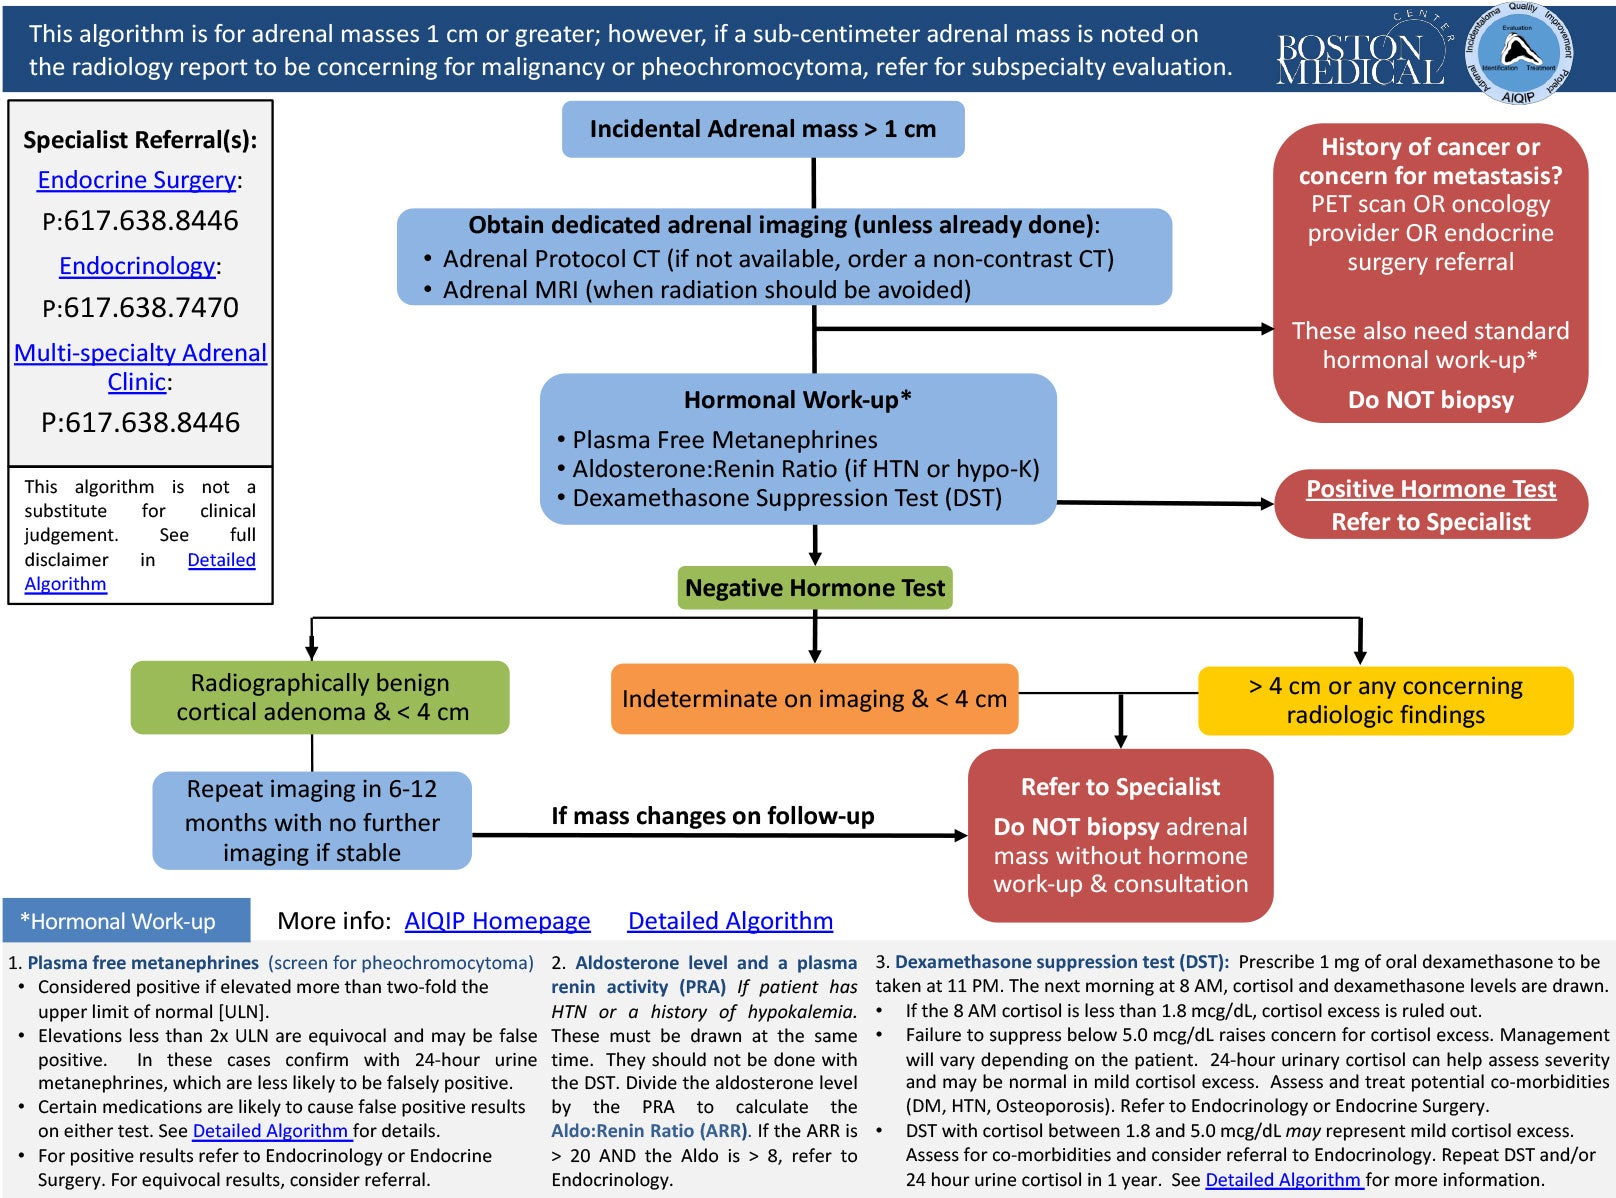 Adrenal Incidentaloma Quality Improvement Project algorithm image